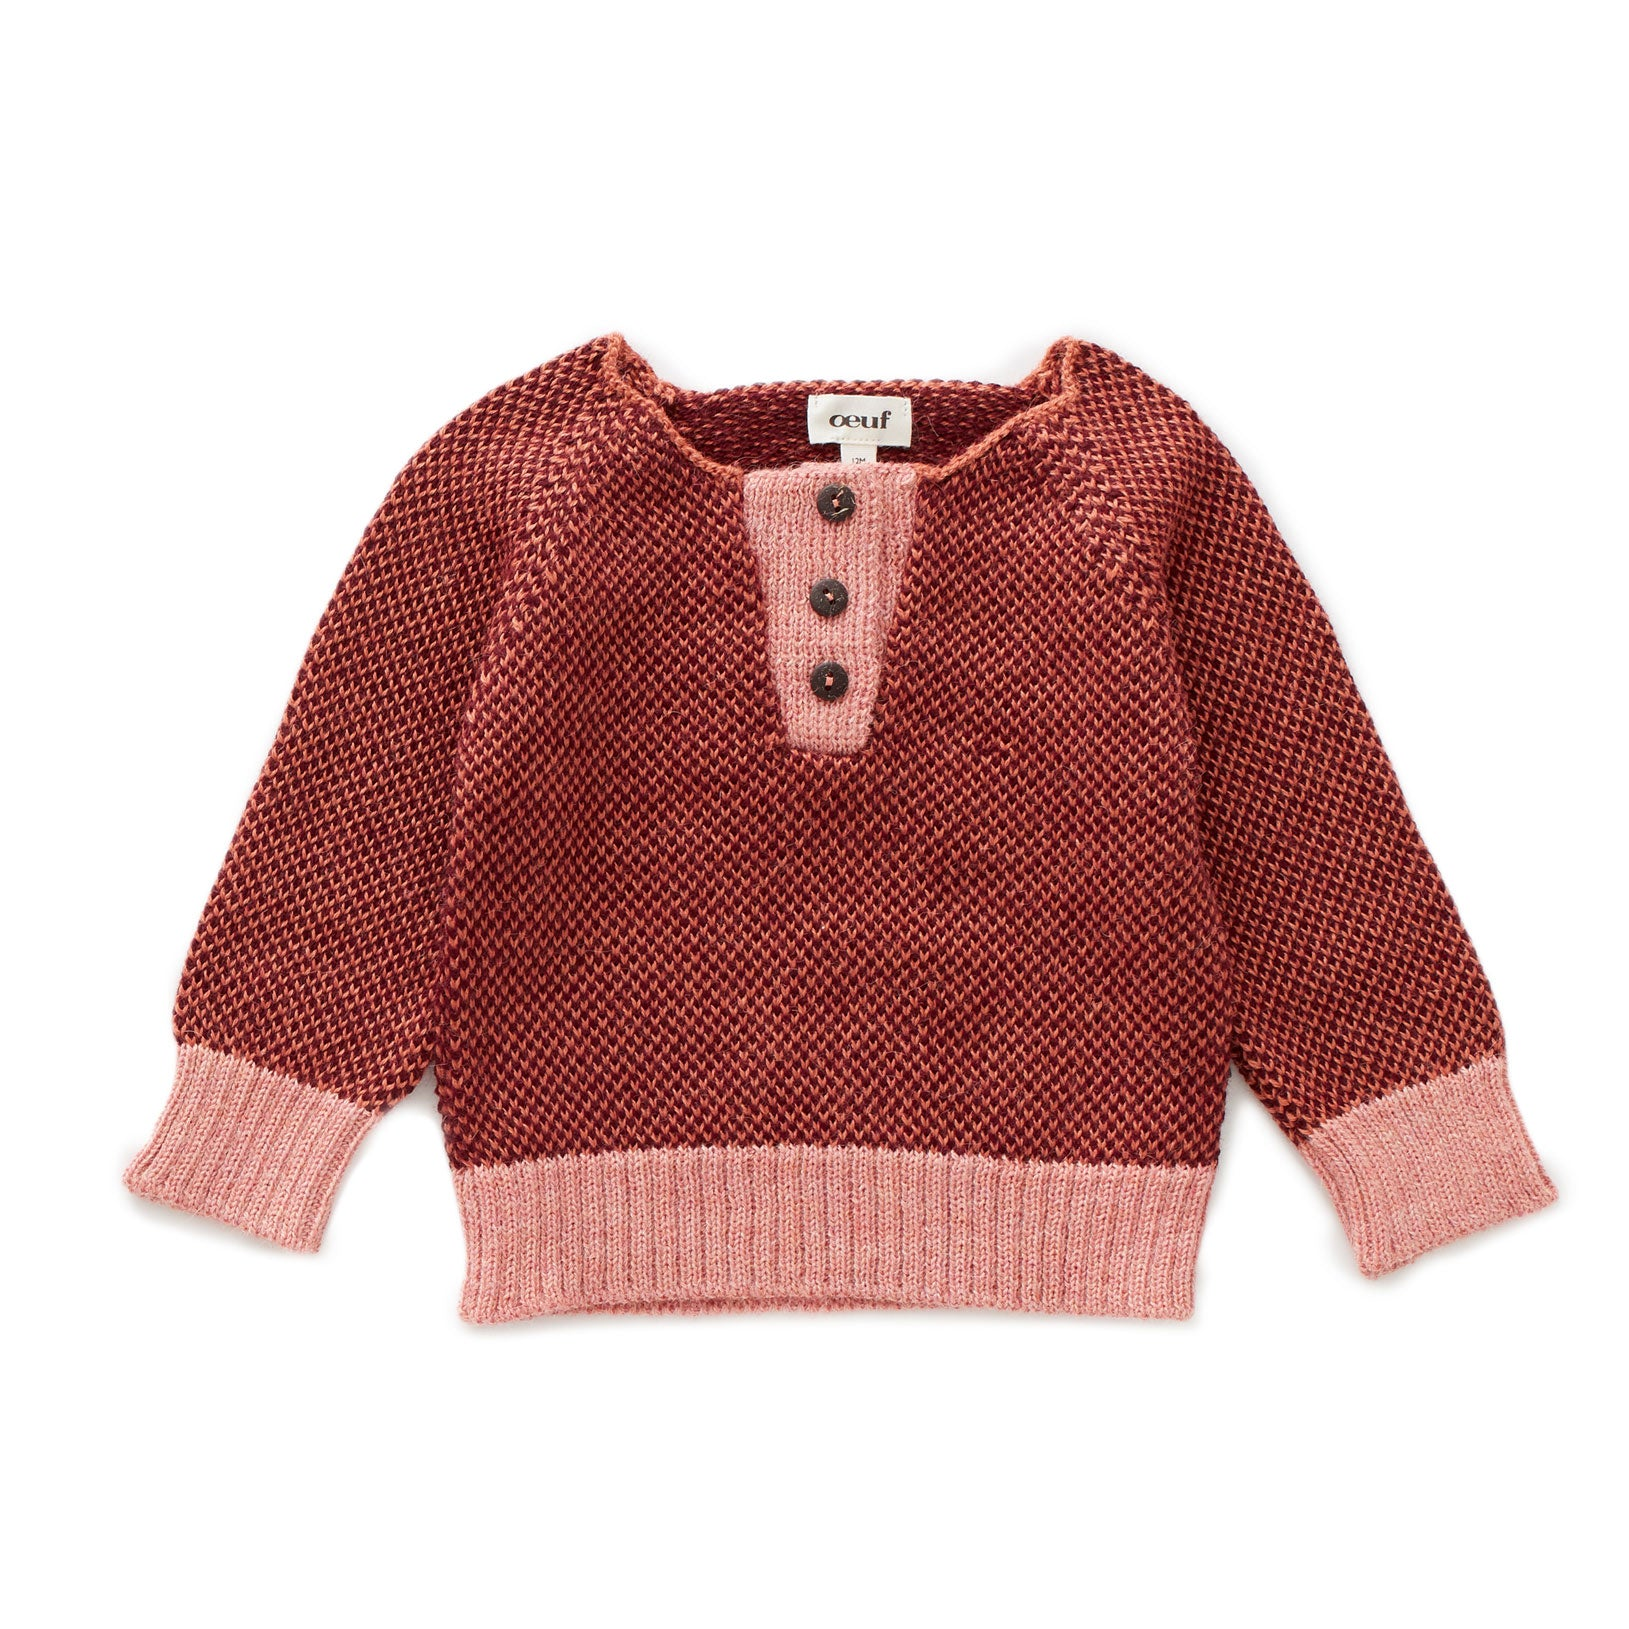 Oeuf Apricot/Burgundy Henley Sweater